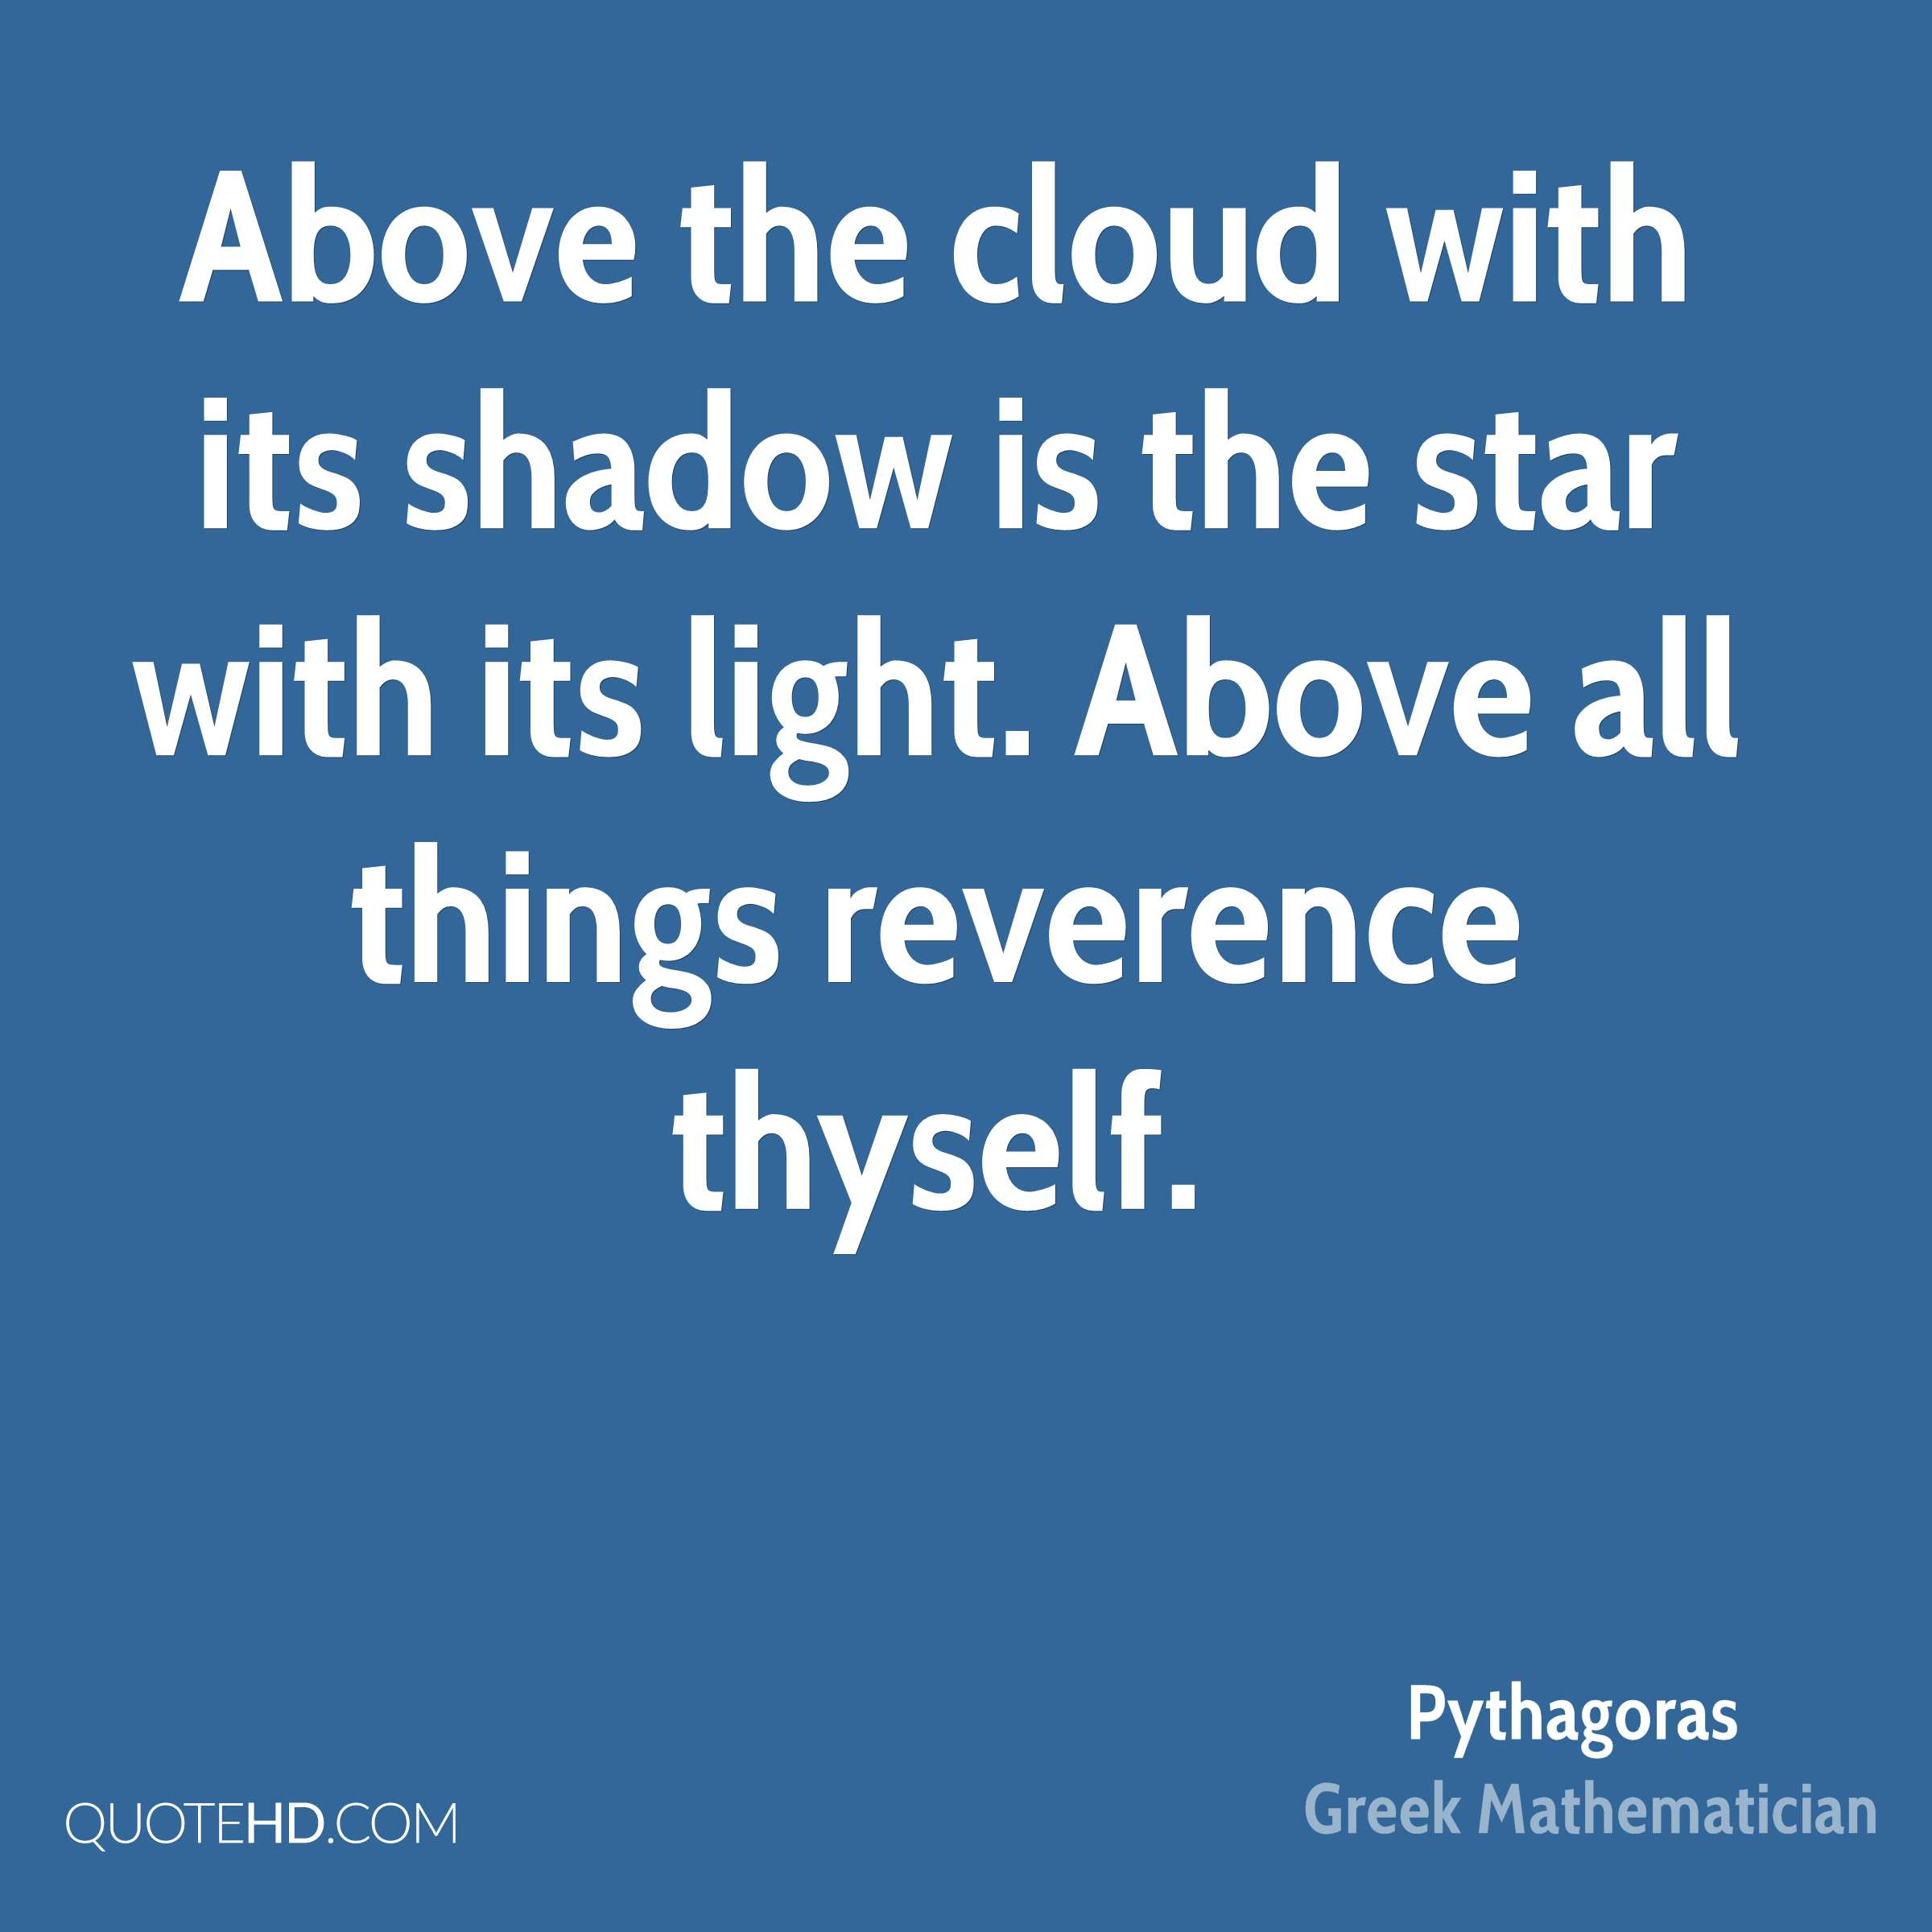 Pythagoras quotes about math